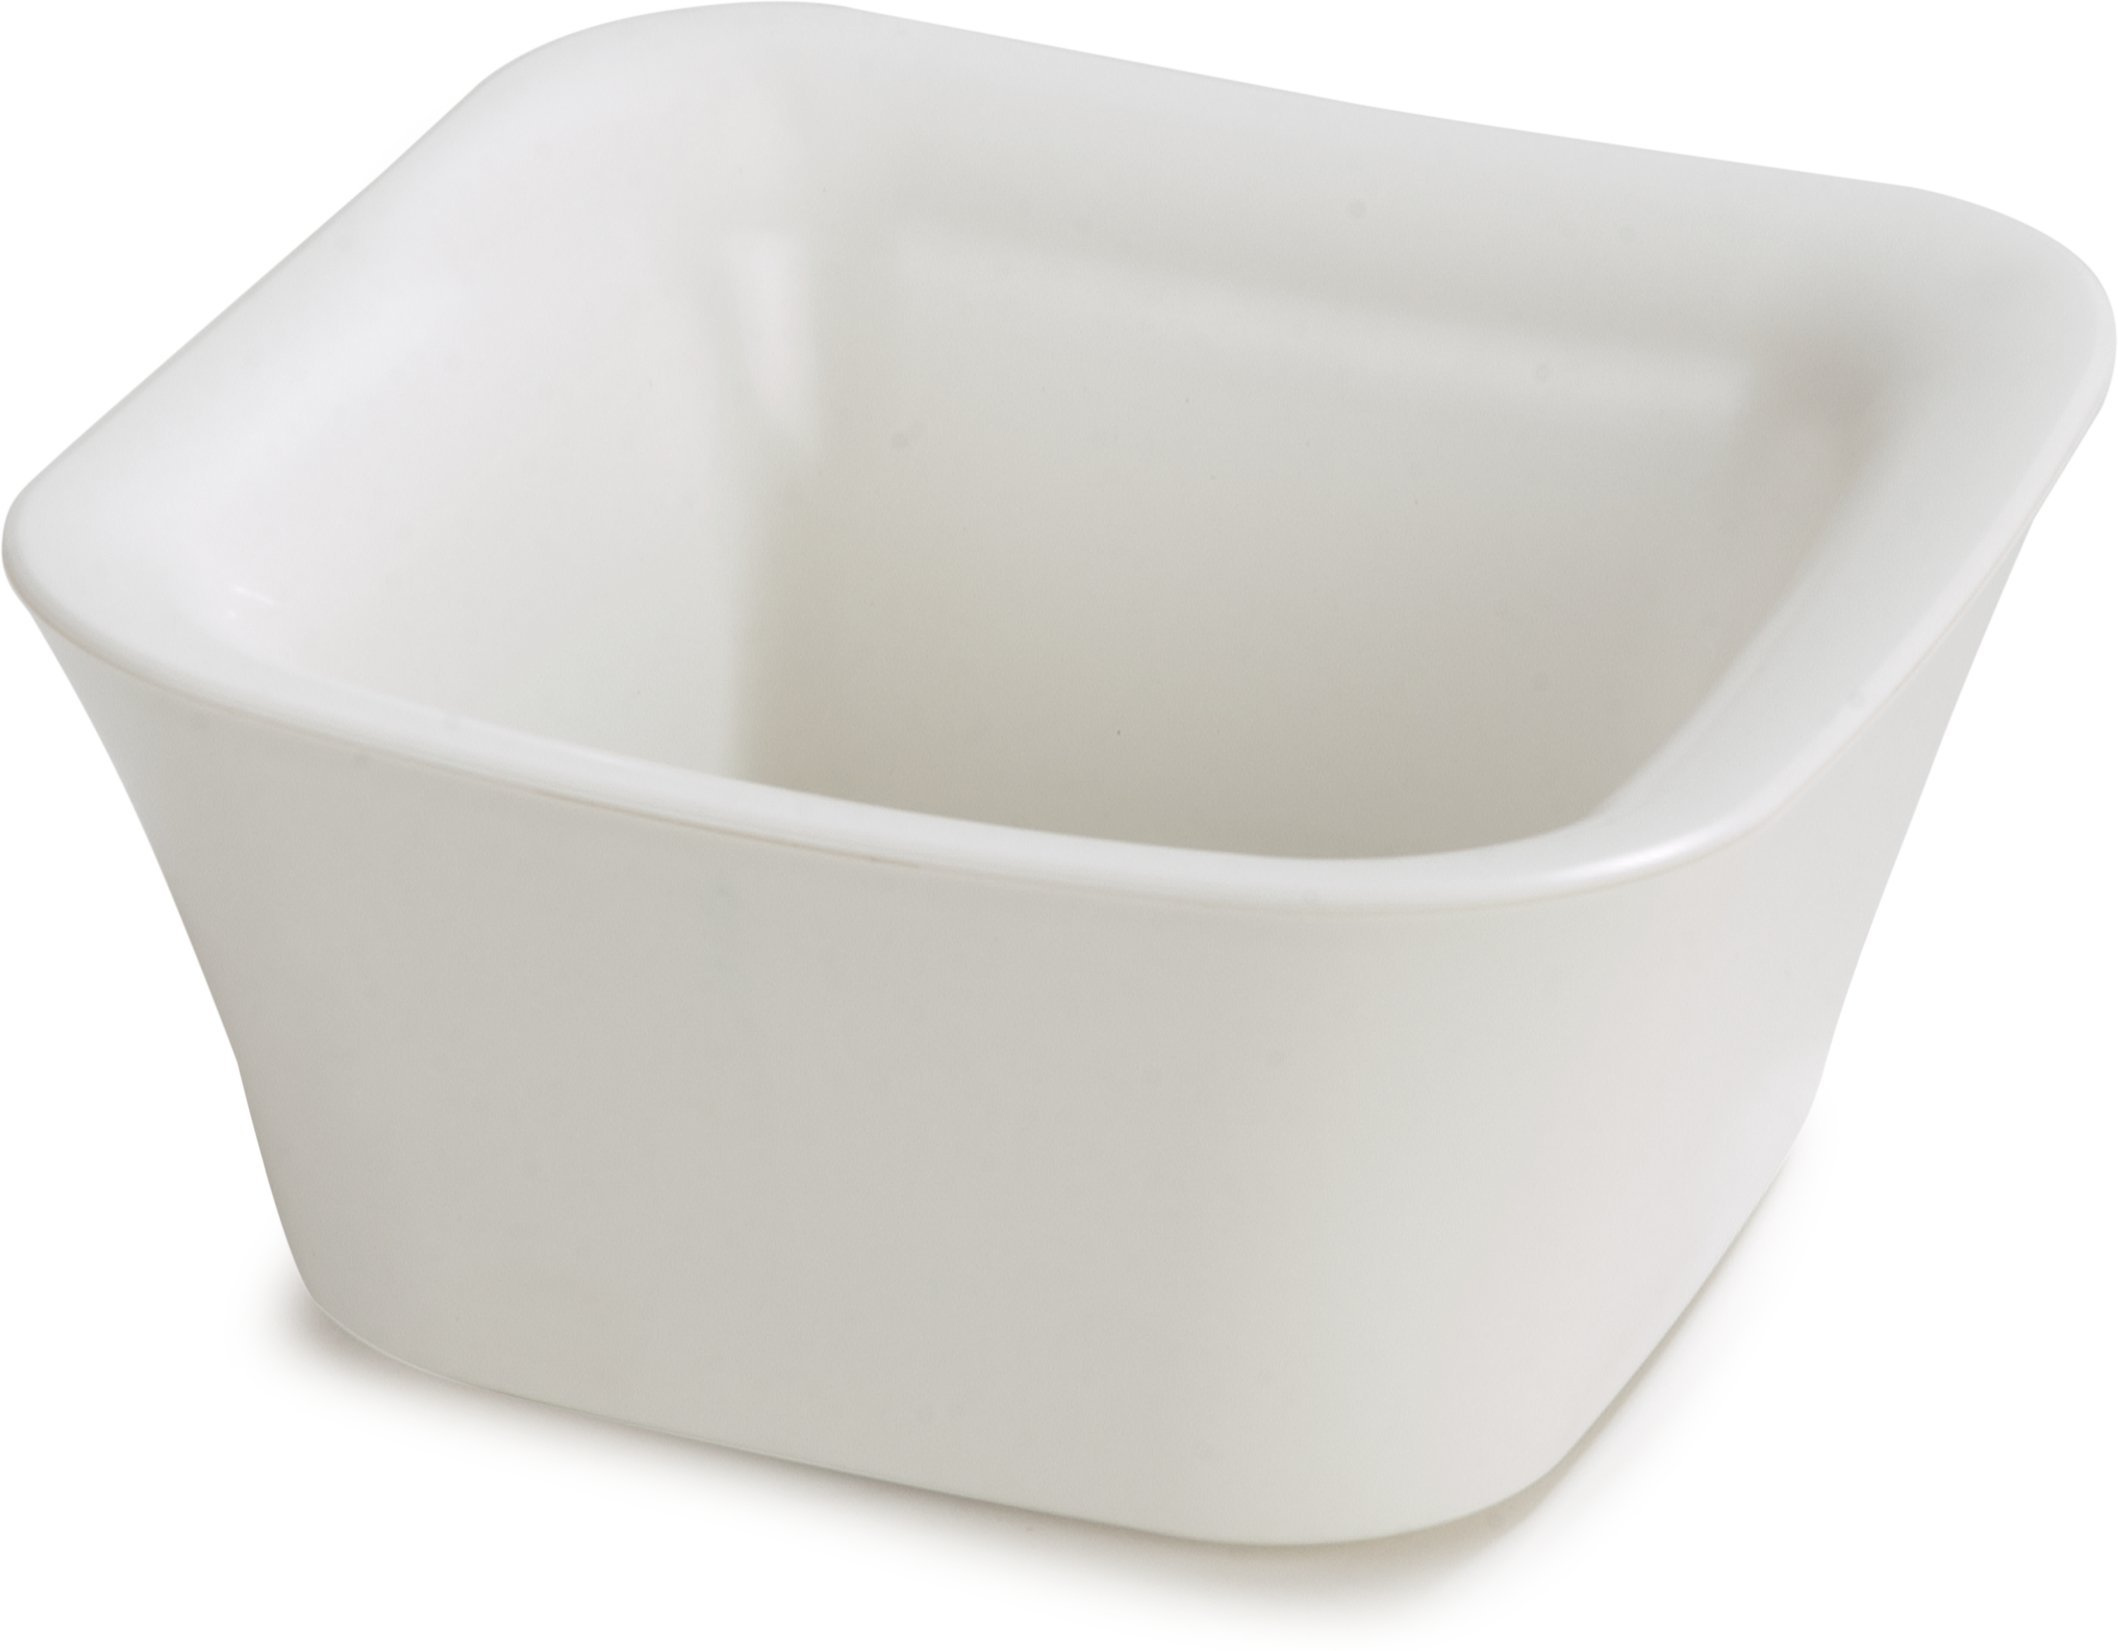 Carlisle CM140002 Coldmaster Insulated Square Serving Crock Only , 1 Quart, White